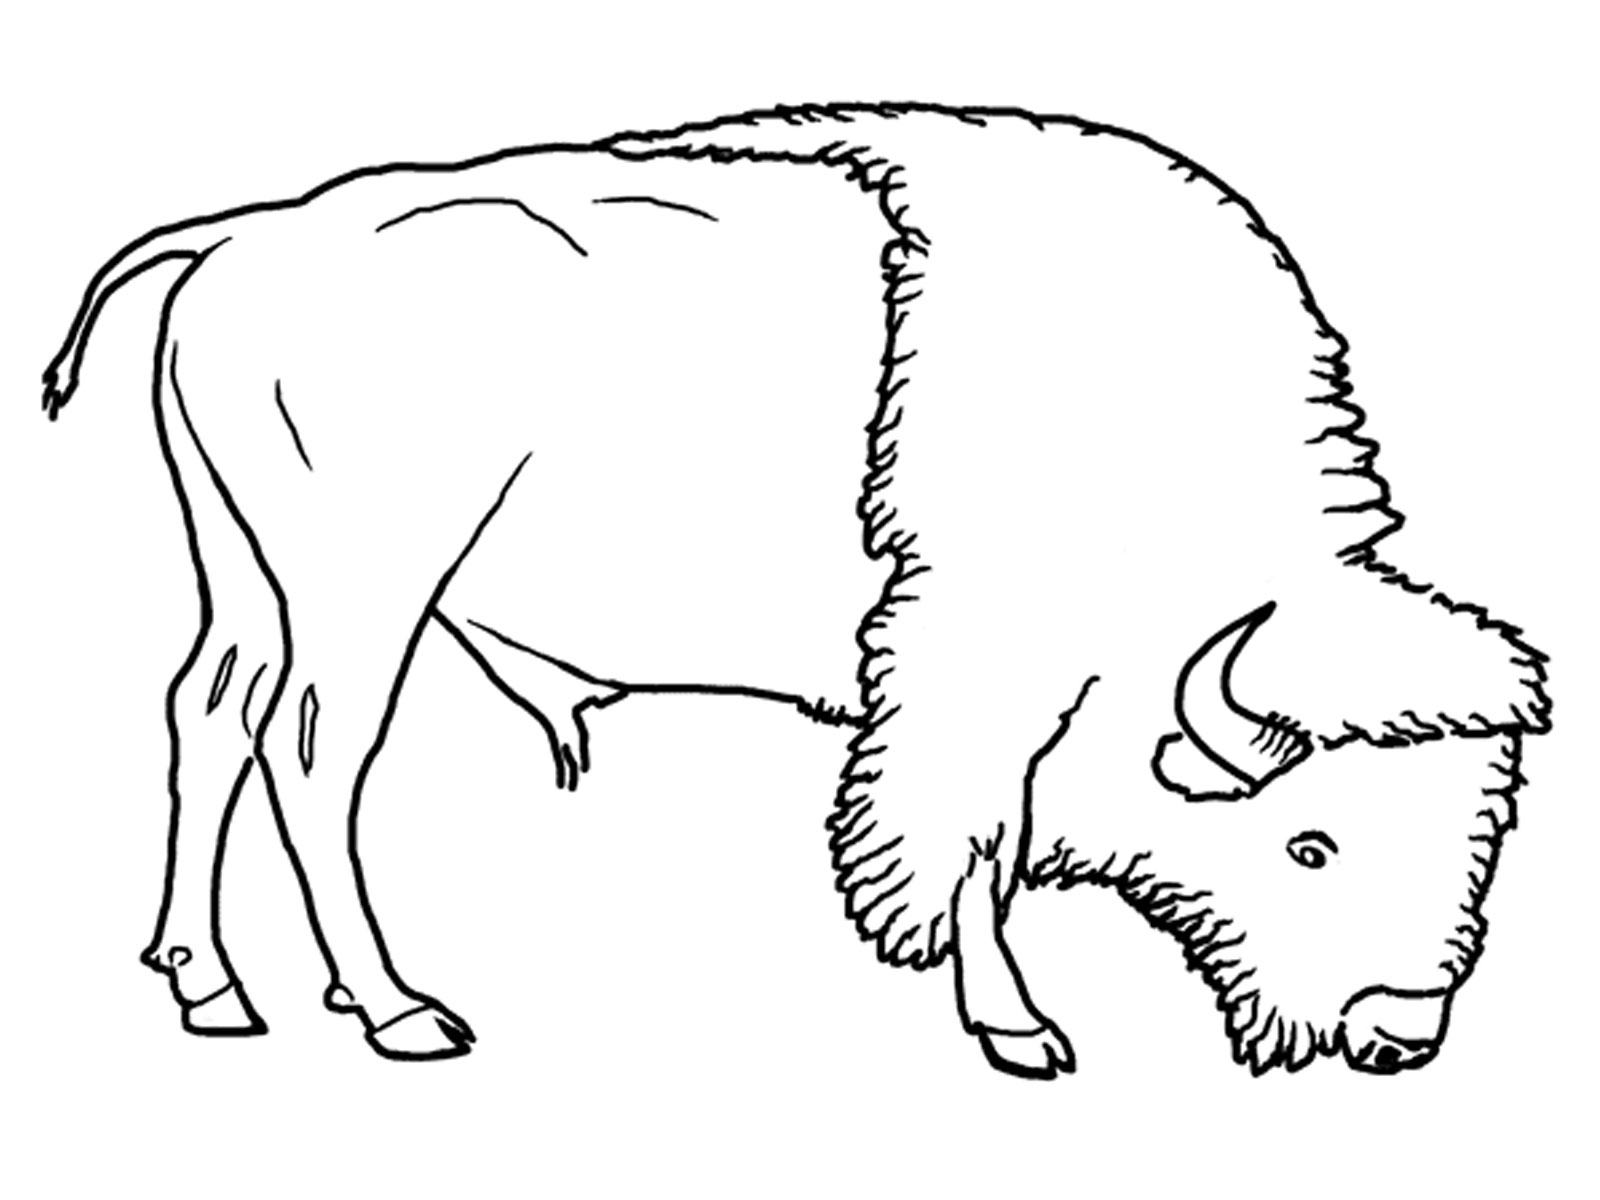 buffalo pictures to color water buffalo coloring page easy coloring page ideas buffalo color pictures to